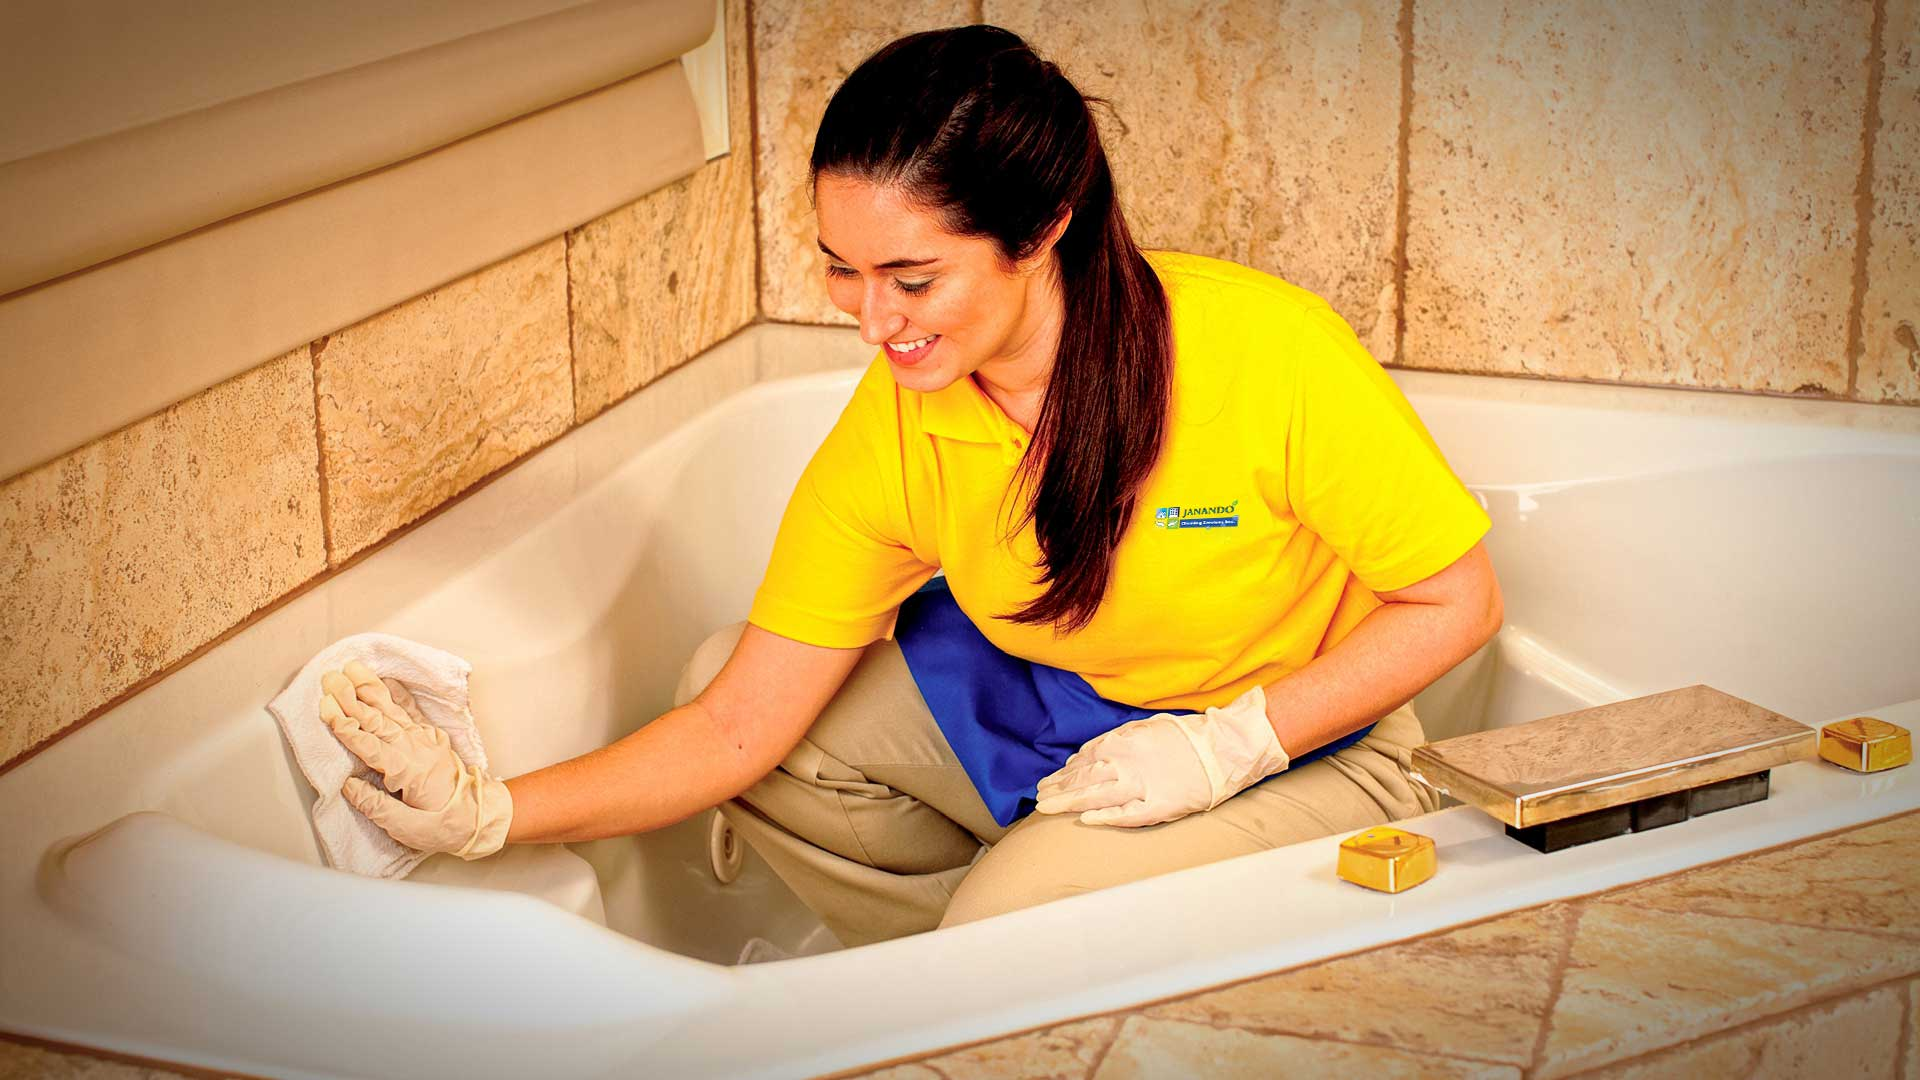 Commercial Cleaning Tampa Residential Cleaning Services Tampa - Bathroom cleaning companies